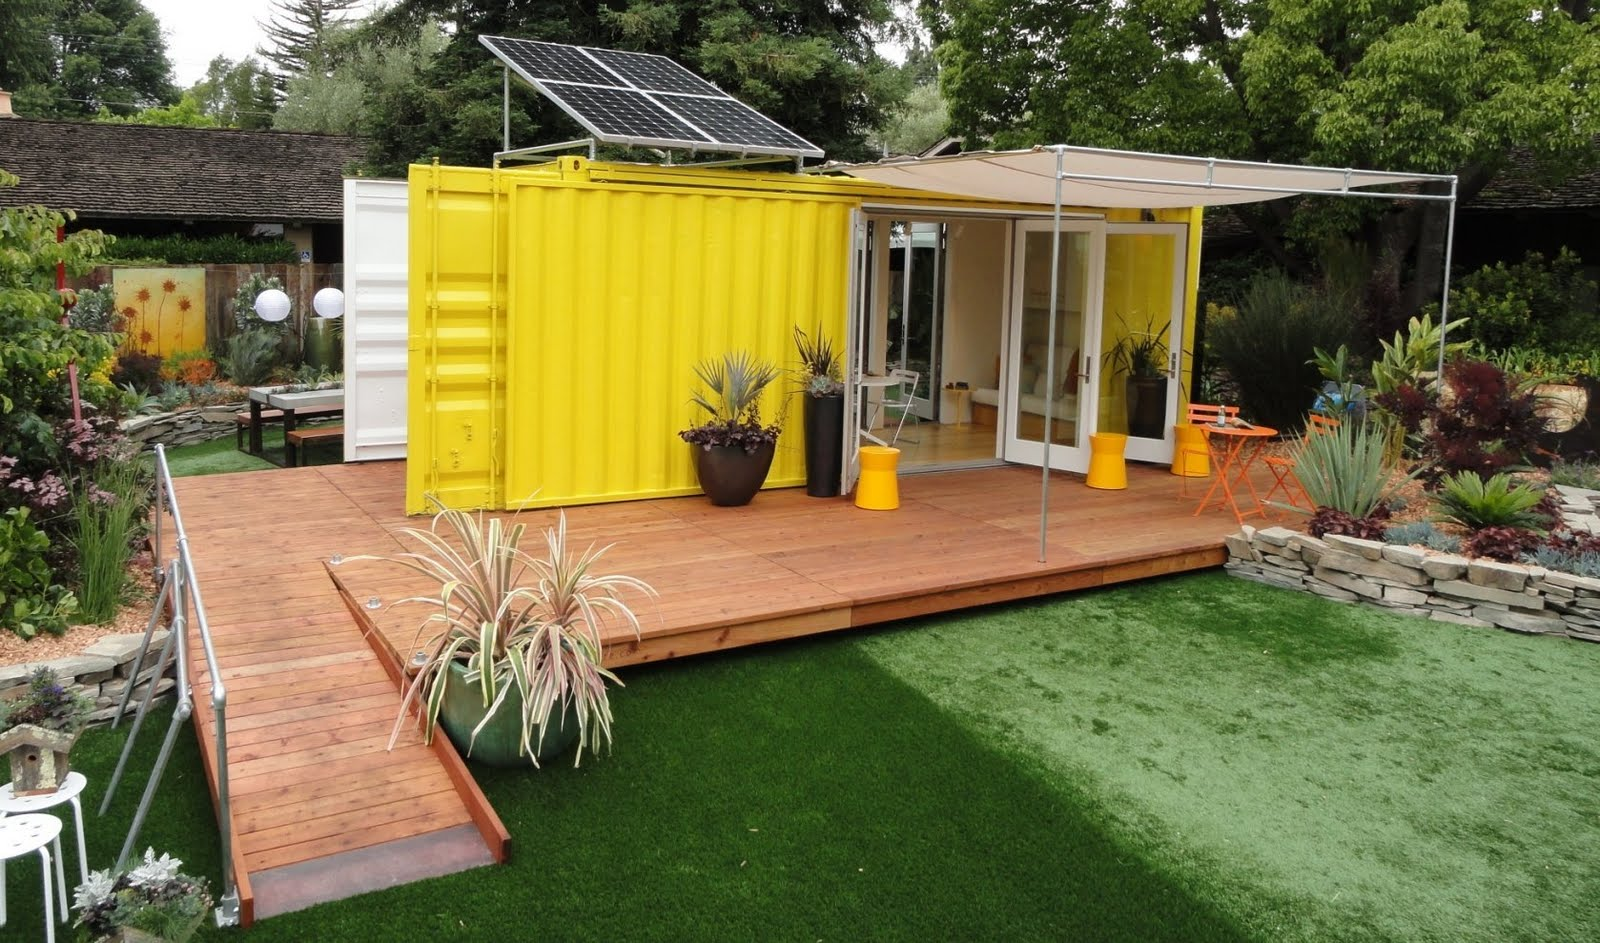 Shipping container homes sunset cargotecture home very nice isbu - Cargo container homes ...